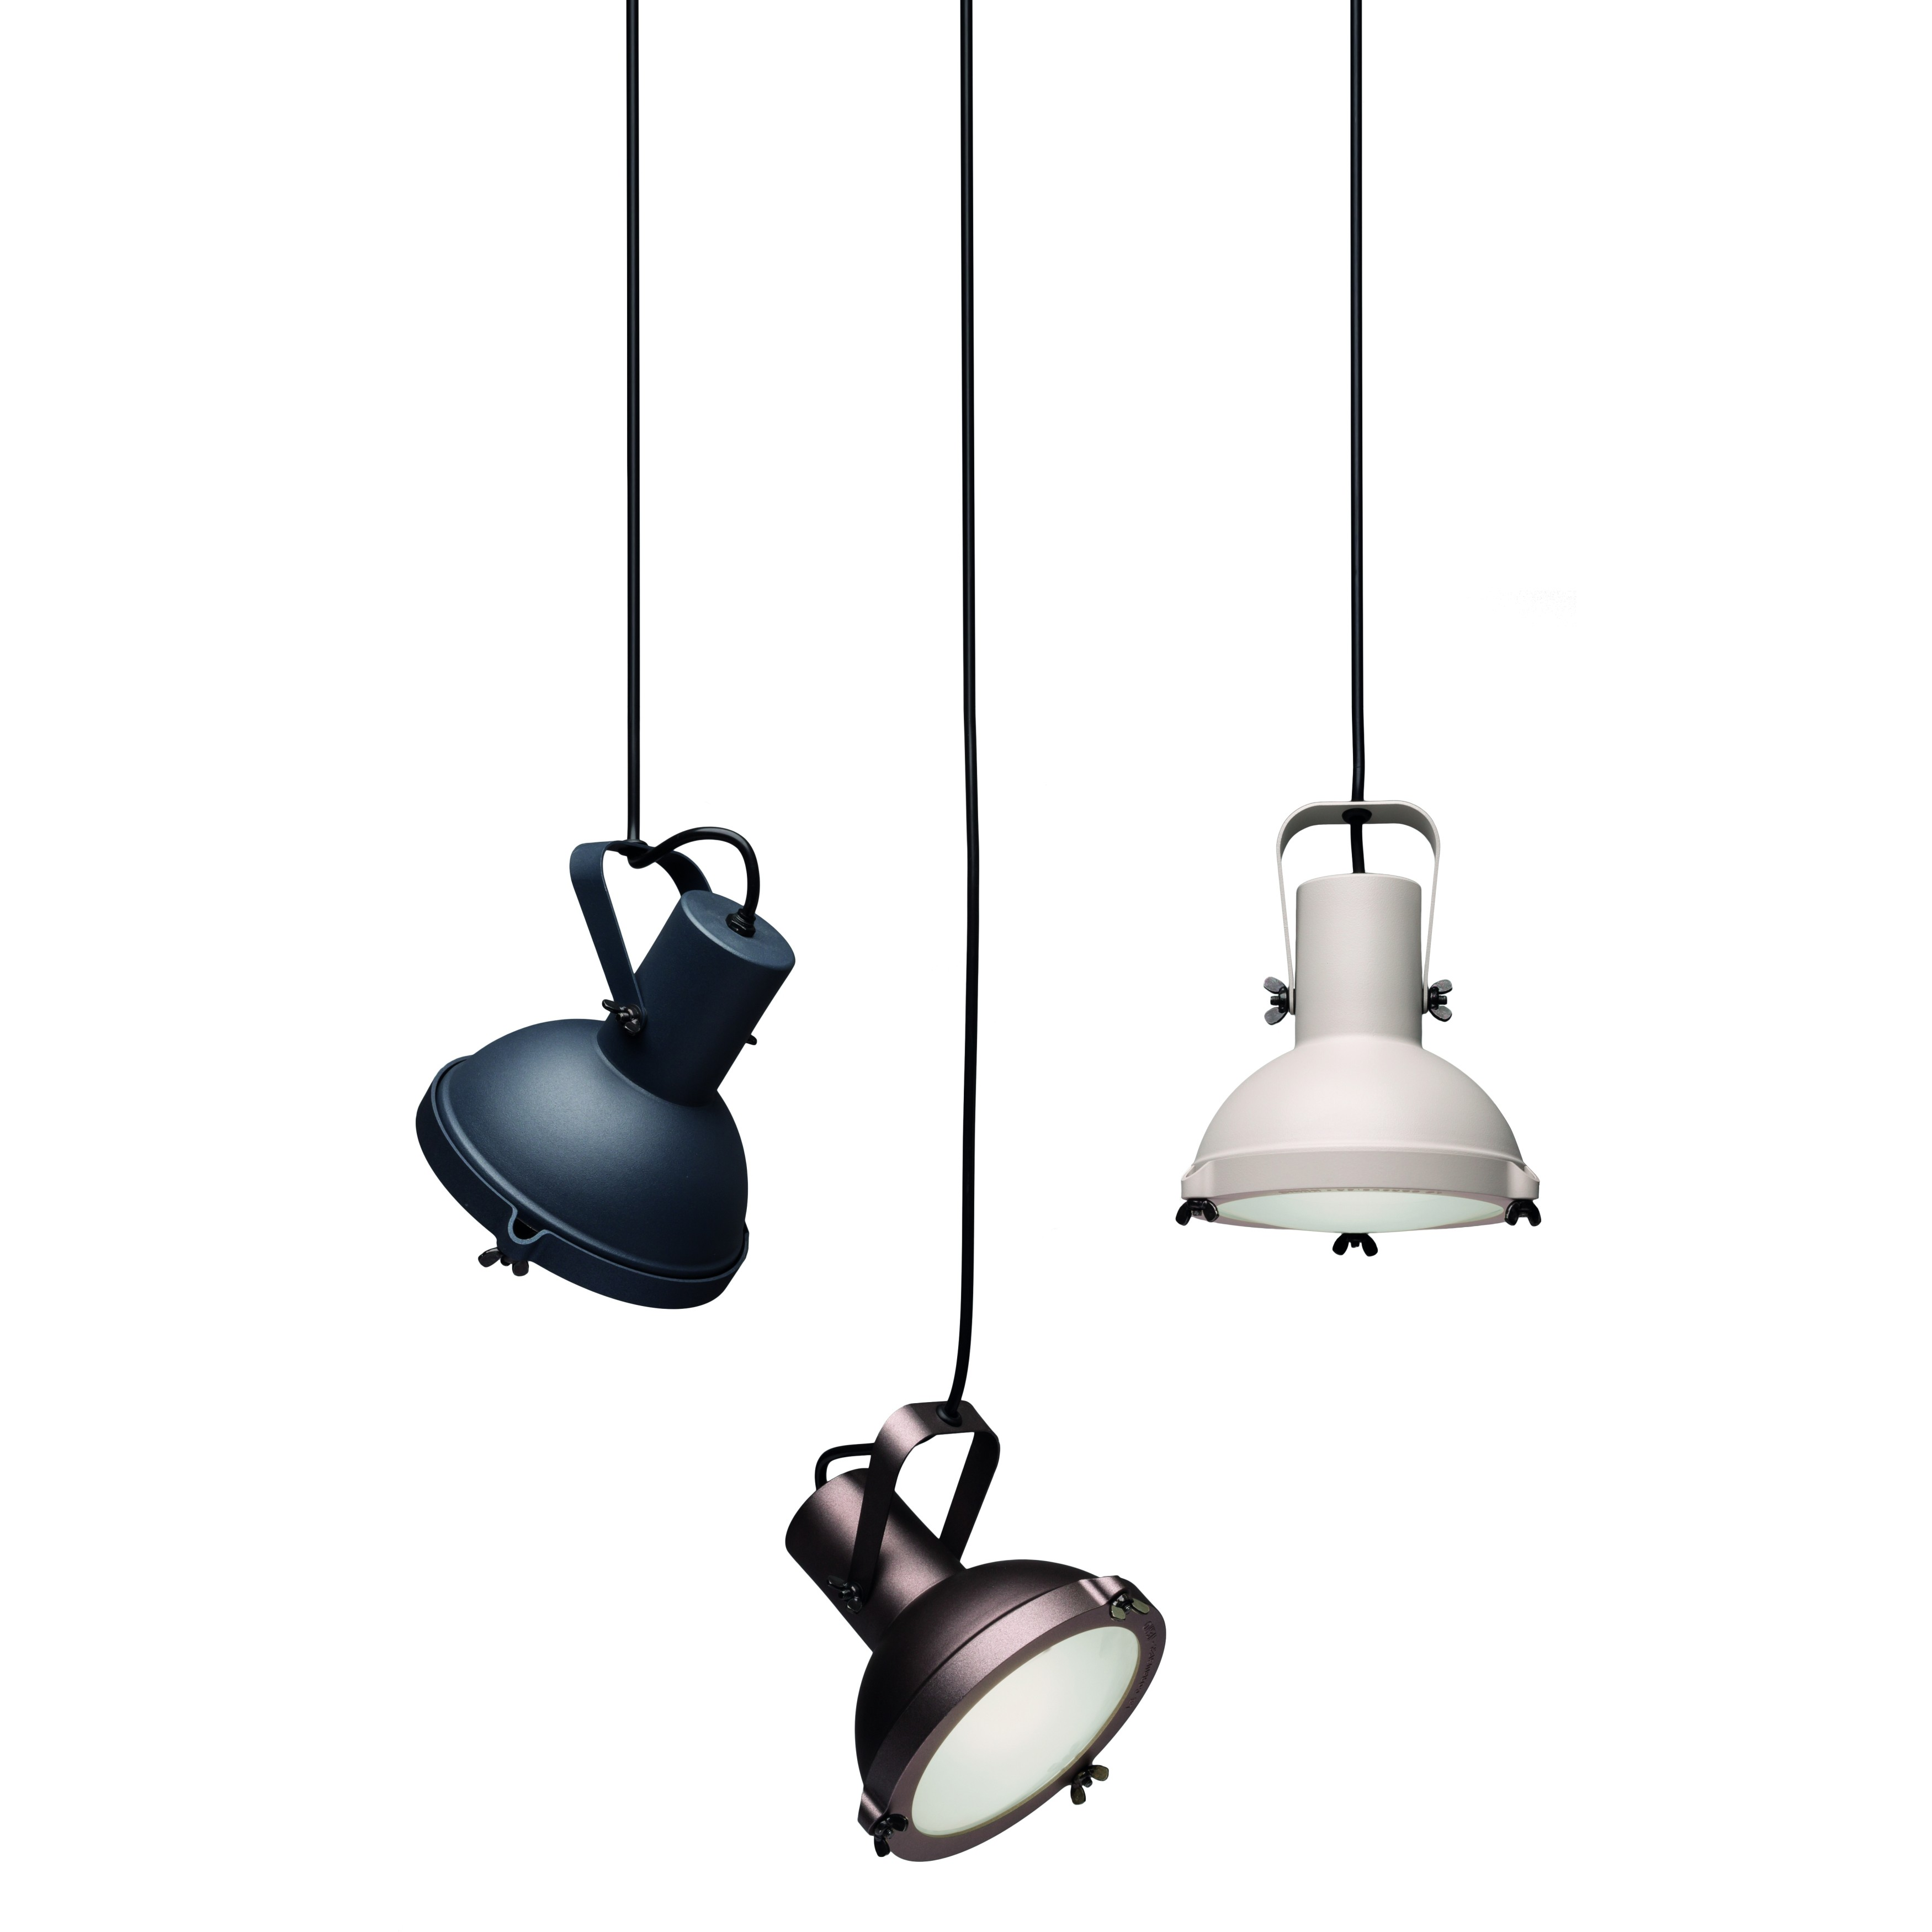 PROJECTEUR 165 suspension lamp